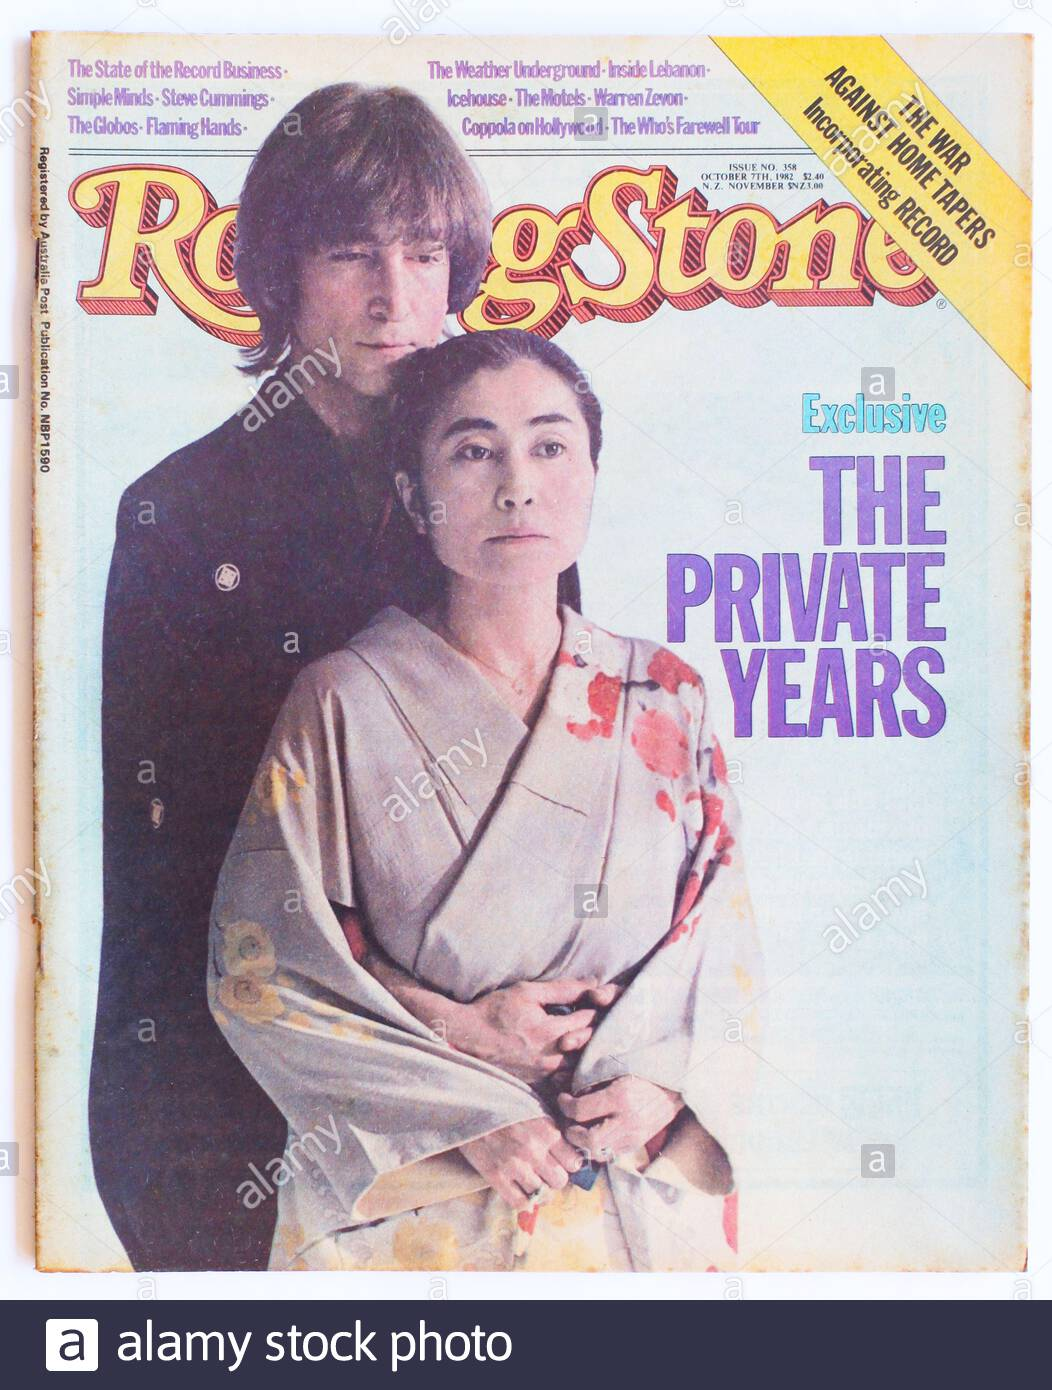 The Cover Of Rolling Stone Magazine Issue 358 October 1982 Featuring John Lennon And Yoko Ono Stock Photo Alamy